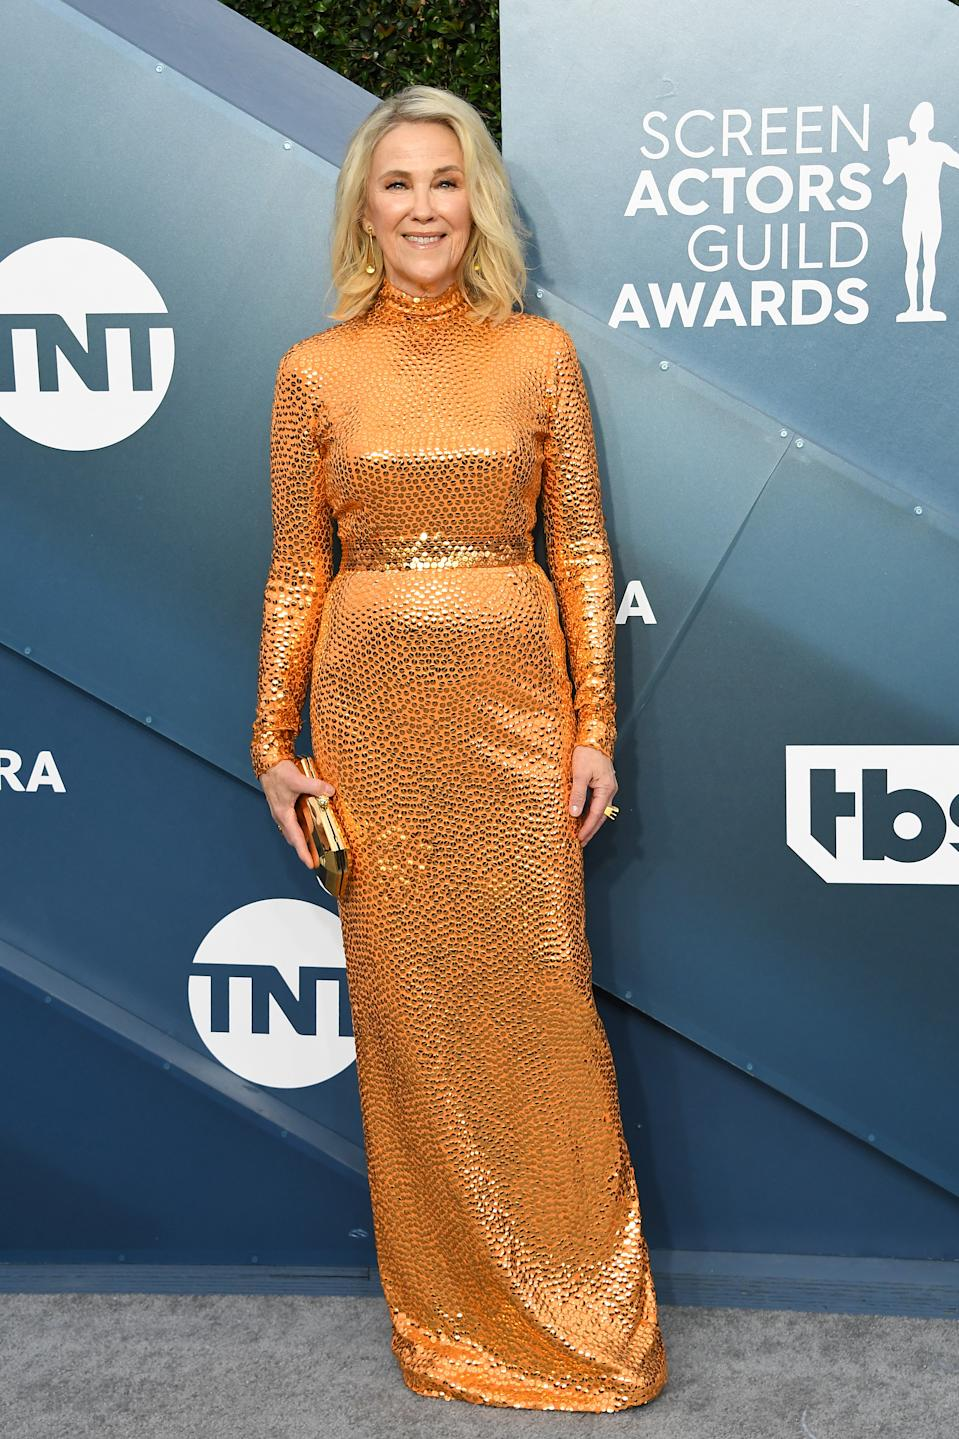 O'Hara sported one of the biggest trends of awards season wither her orange belted gown by Marc Jacobs and metallic accessories.